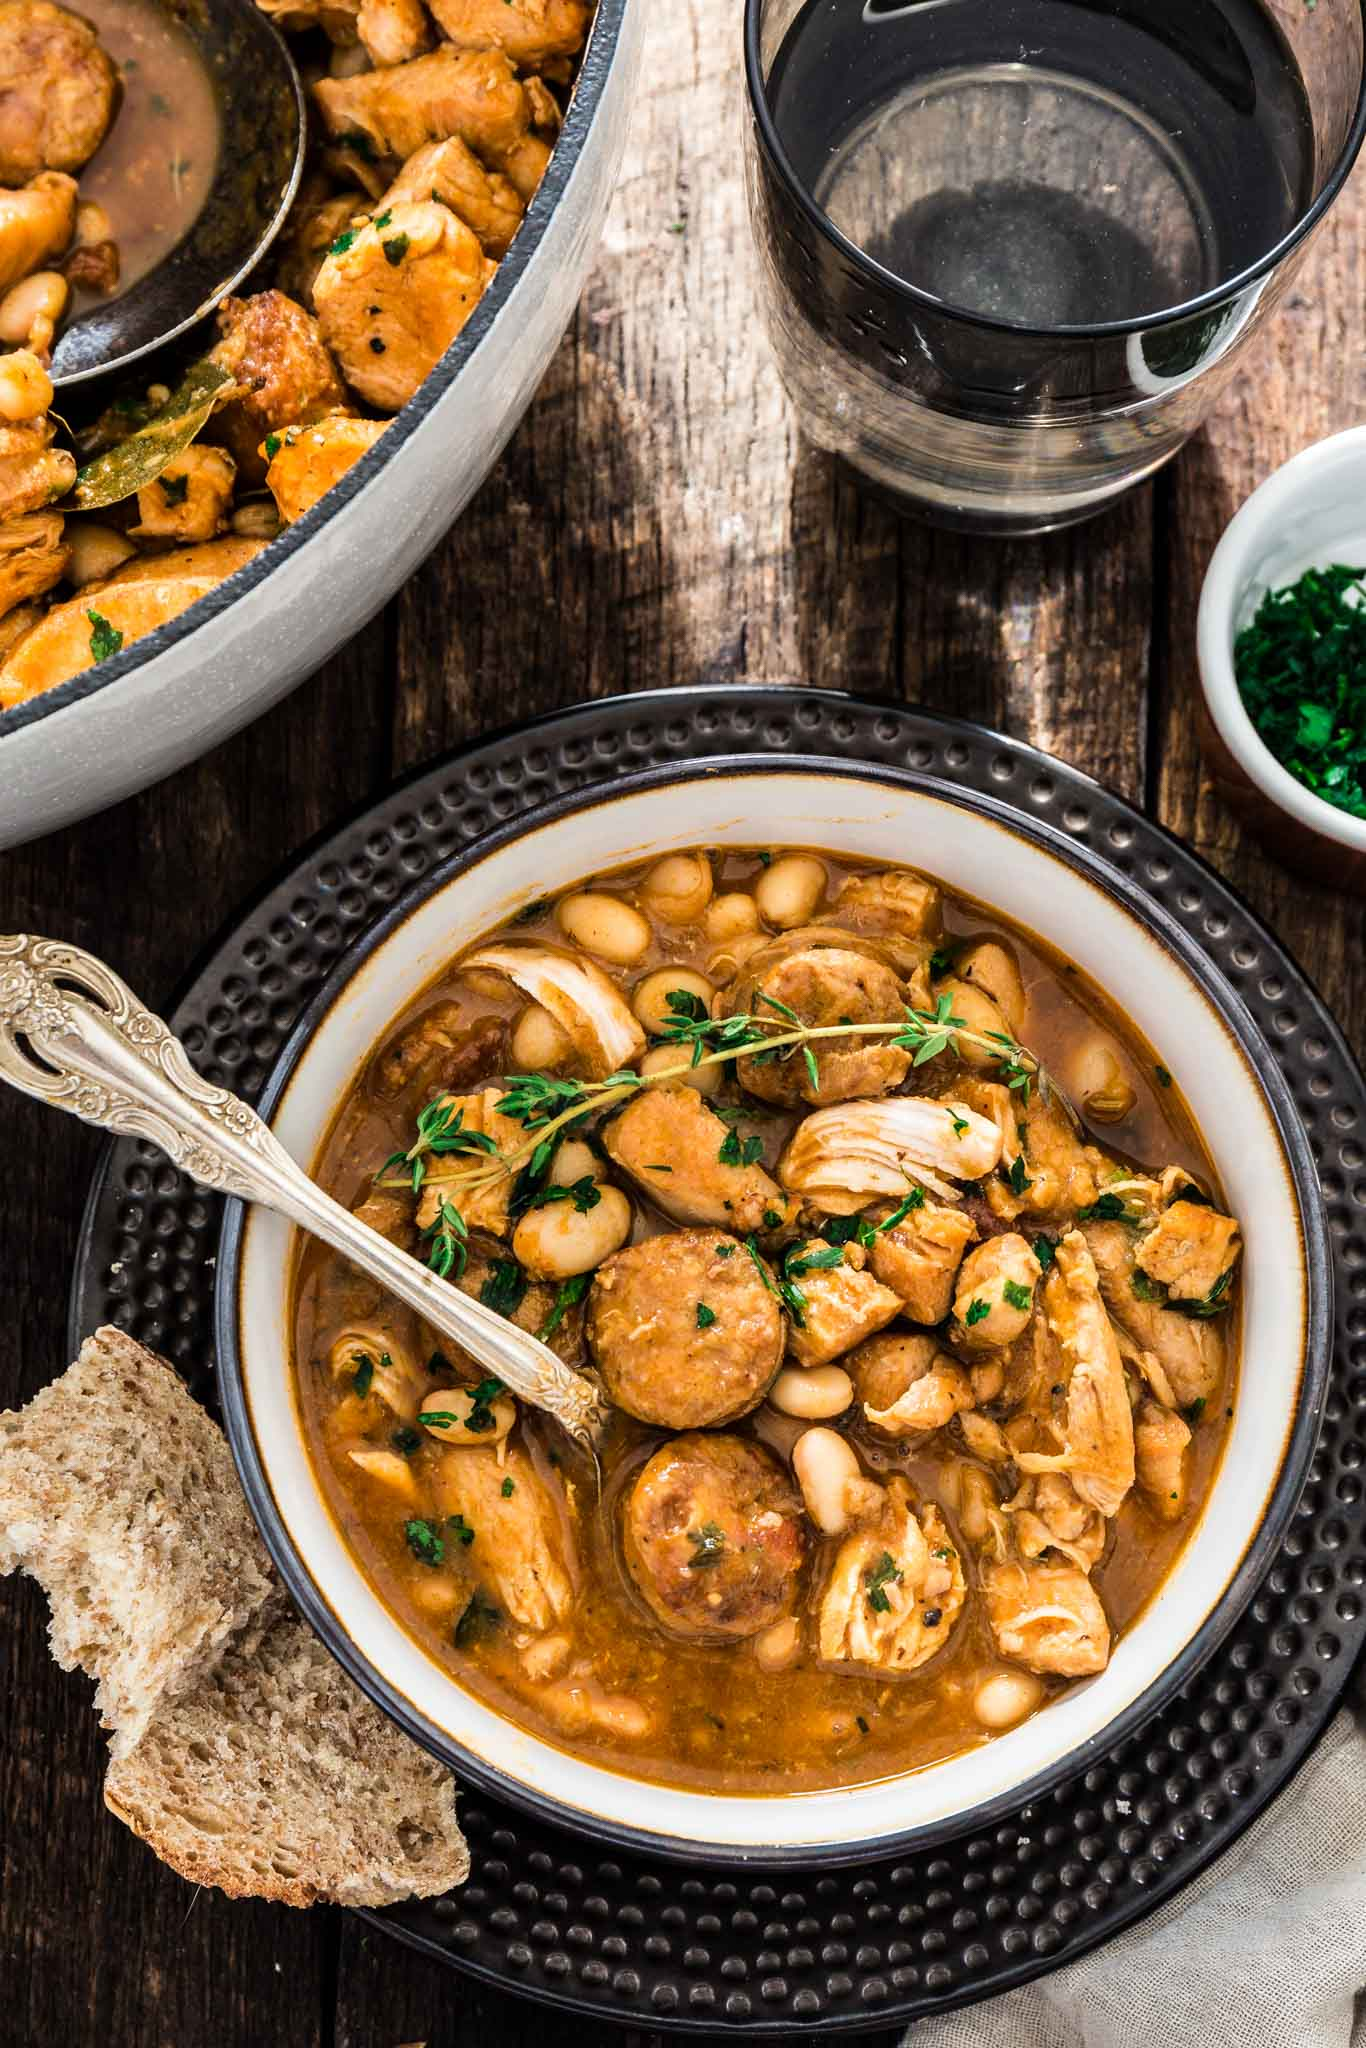 Brazilian Paprika Chicken Stew | www.oliviascuisine.com | A hearty and comforting Brazilian Paprika Chicken Stew is possibly one of the best ways to warm up this fall/winter. It is also very easy to make and done in one pot!